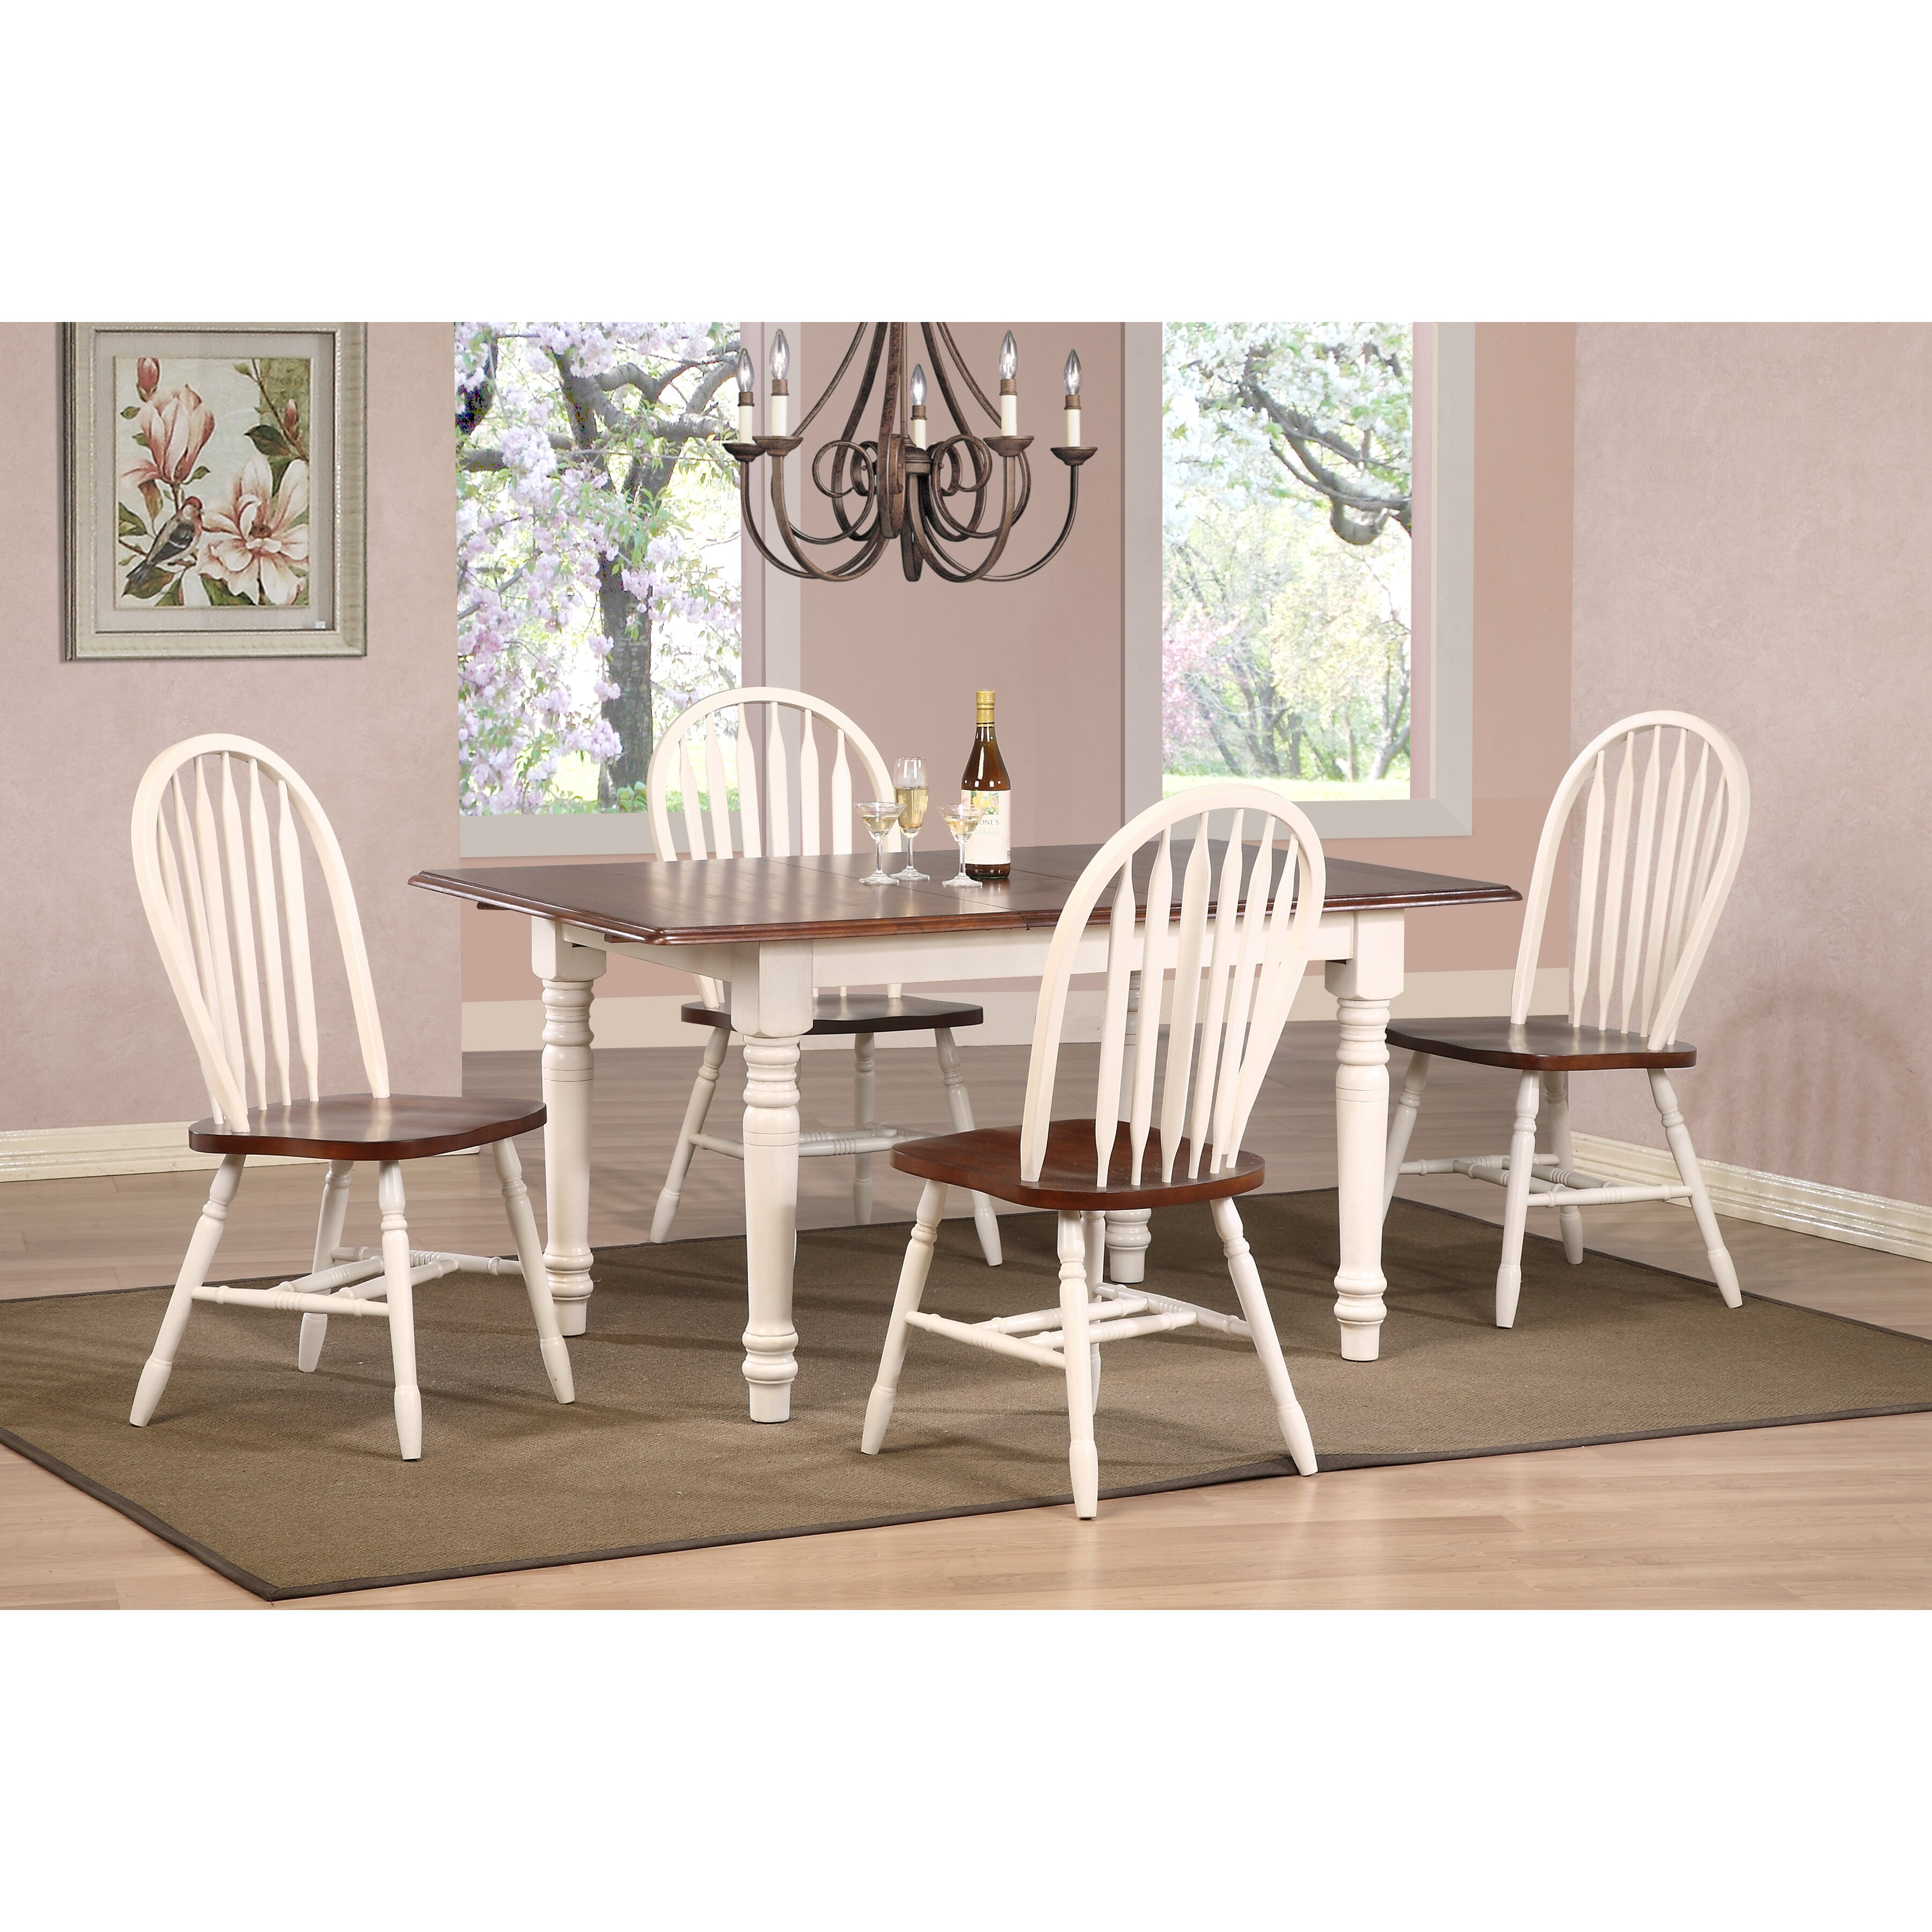 Sunset Trading Sunset Selections Butterfly 5 Piece Dining ...